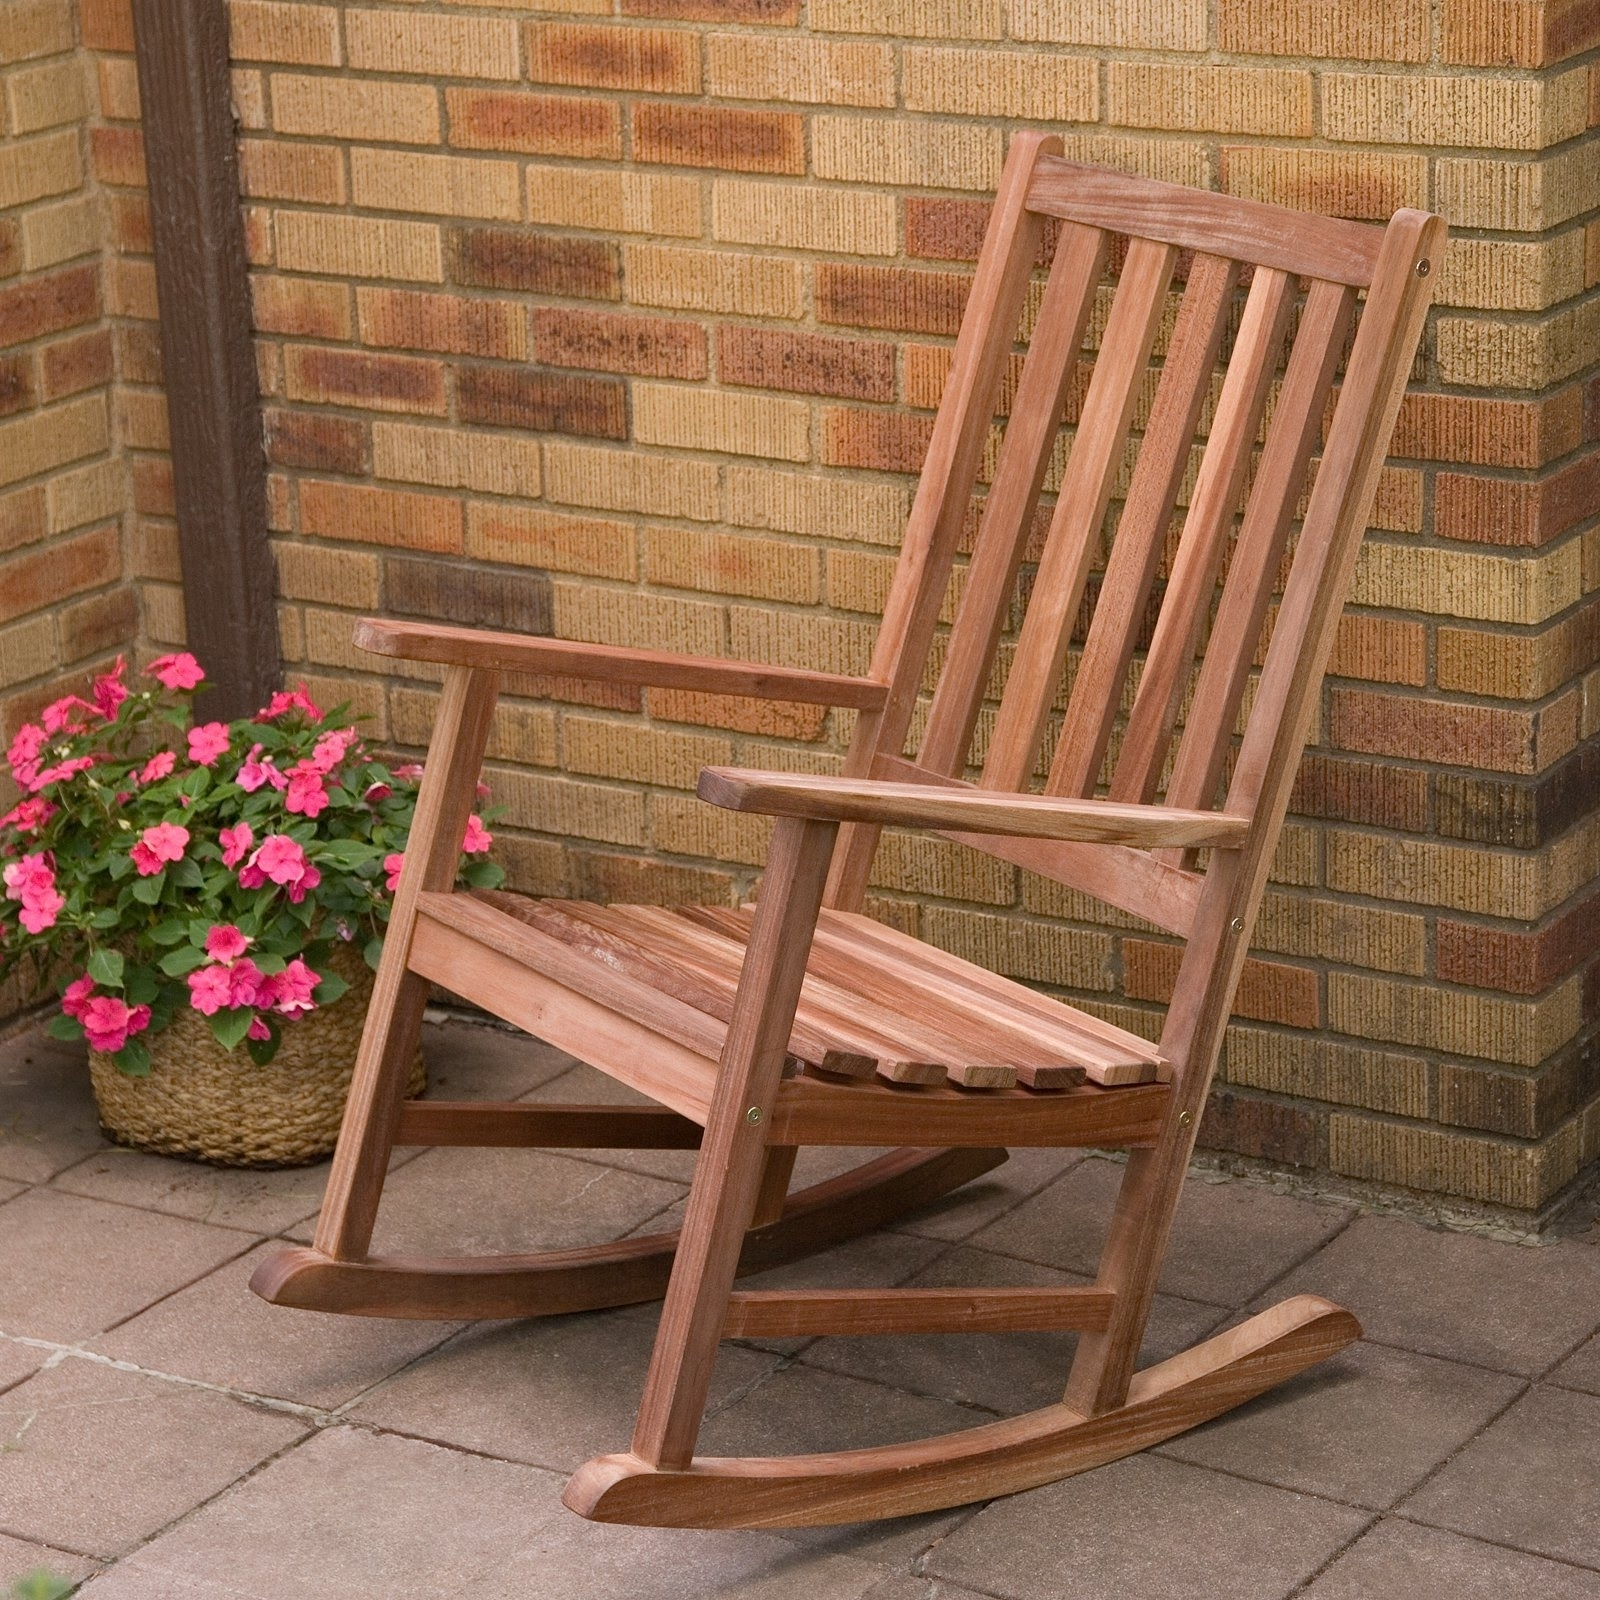 Recent Patio & Garden : Outdoor Rocking Chair Lowes Outdoor Rocking Chair For Wicker Rocking Chairs And Ottoman (View 12 of 20)